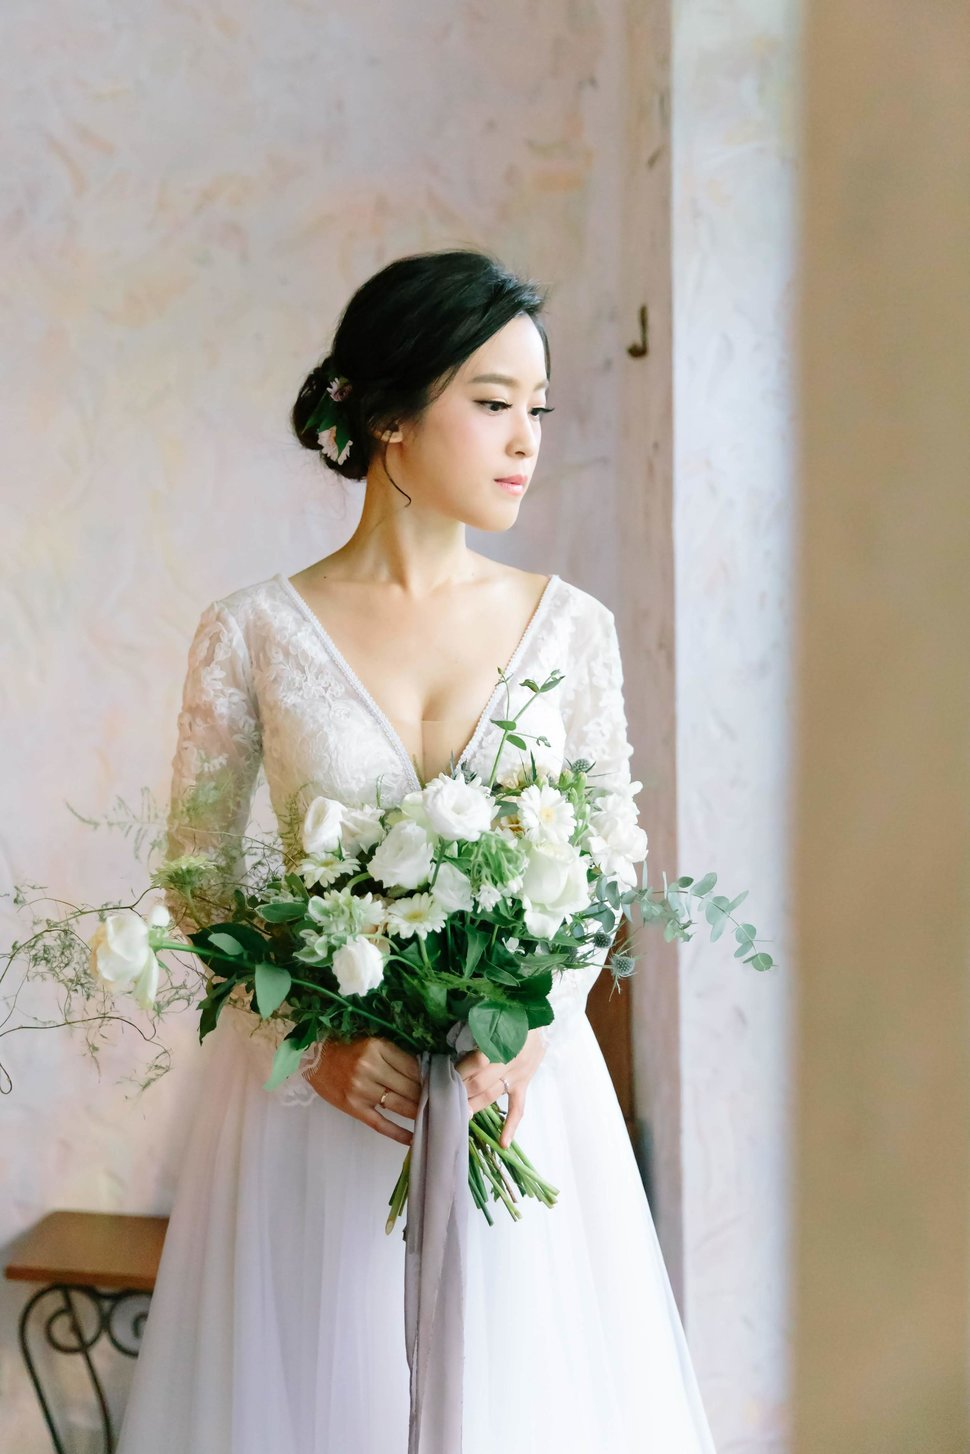 美式婚紗-自助婚紗-Amazing Grace攝影-台中婚紗- Amazing Grace Studio4 - Amazing Grace Studio《結婚吧》